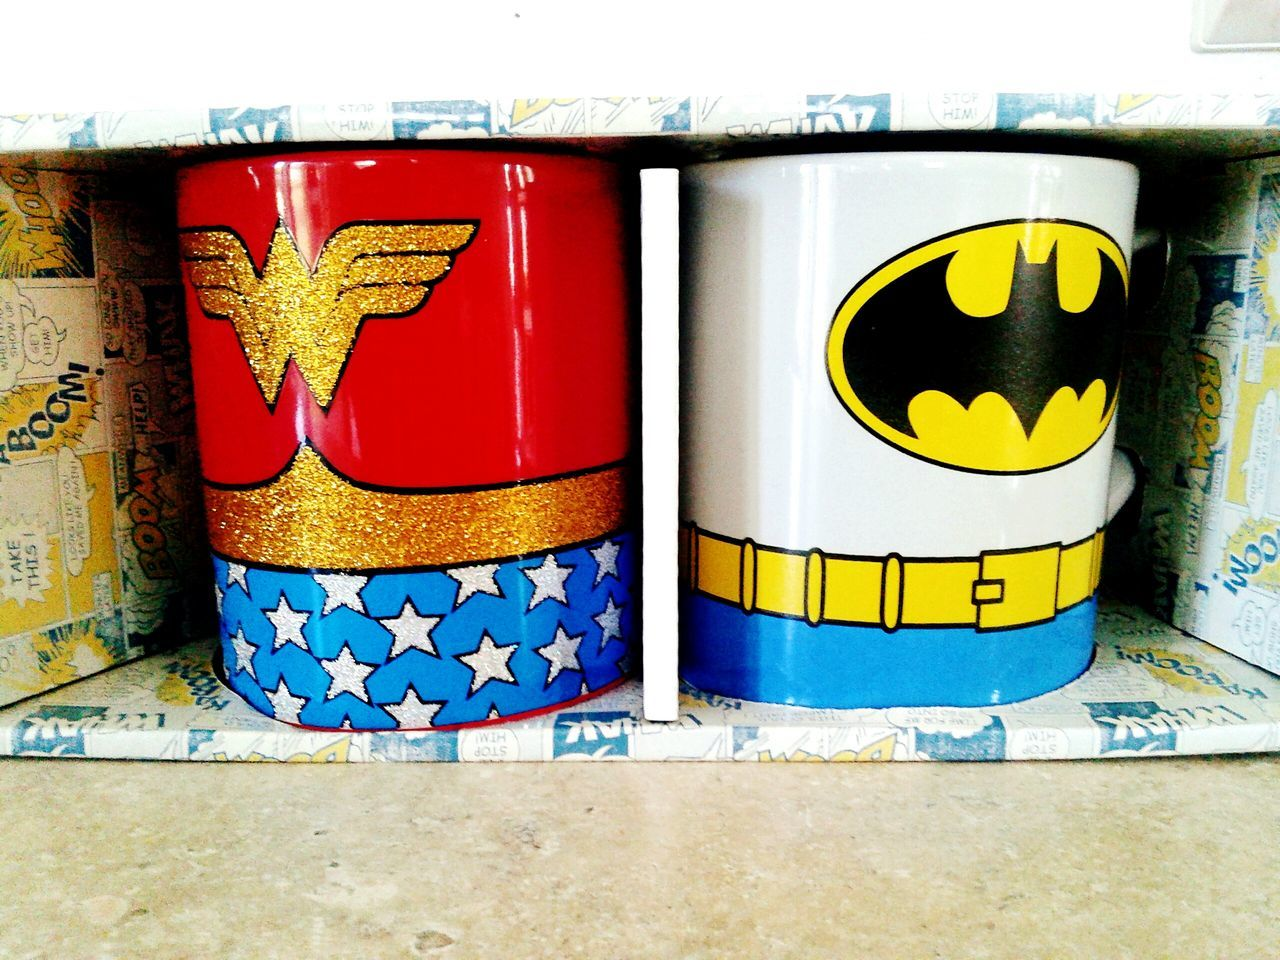 Justiceleague Batmanwonderwoman, Batman fave mugs Lookatthis Mugs